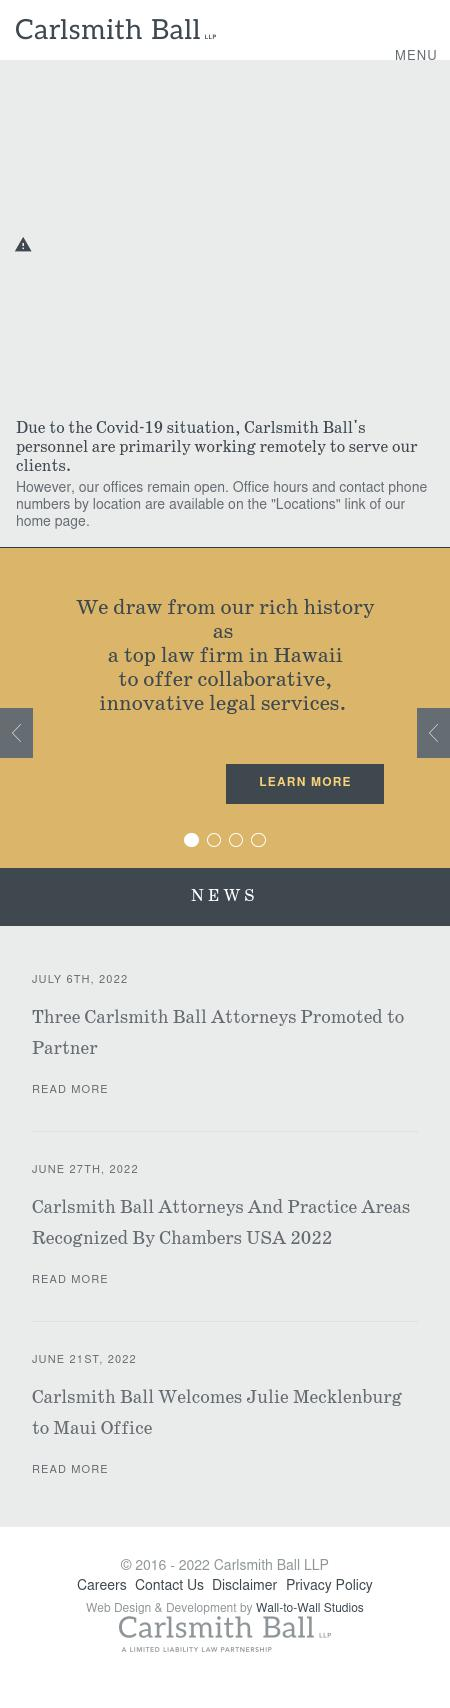 Carlsmith Ball LLP - Los Angeles CA Lawyers